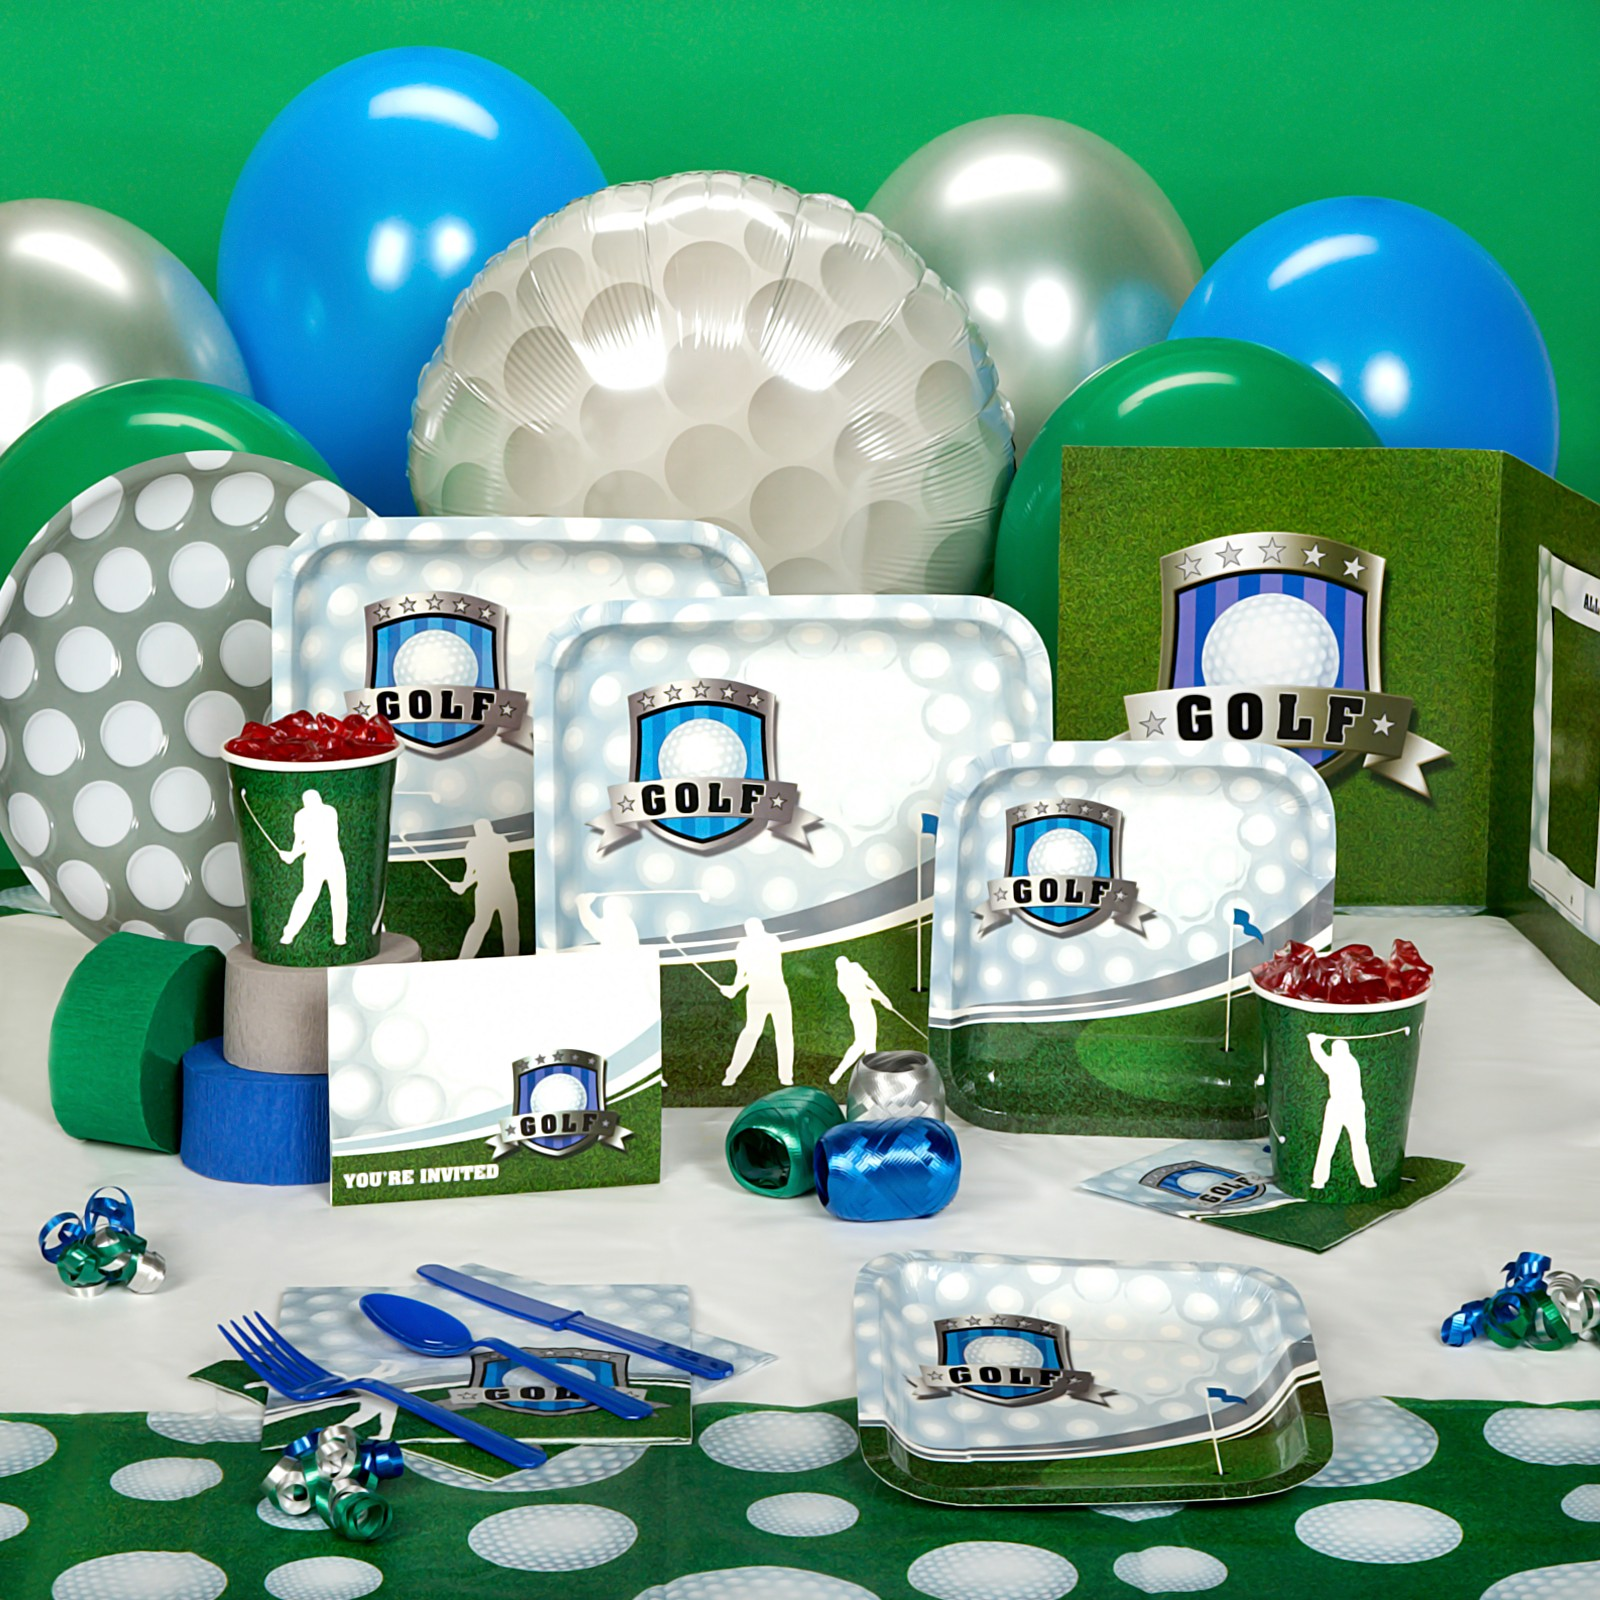 Golf Themed Birthday Party Supplies From Celebrate Express